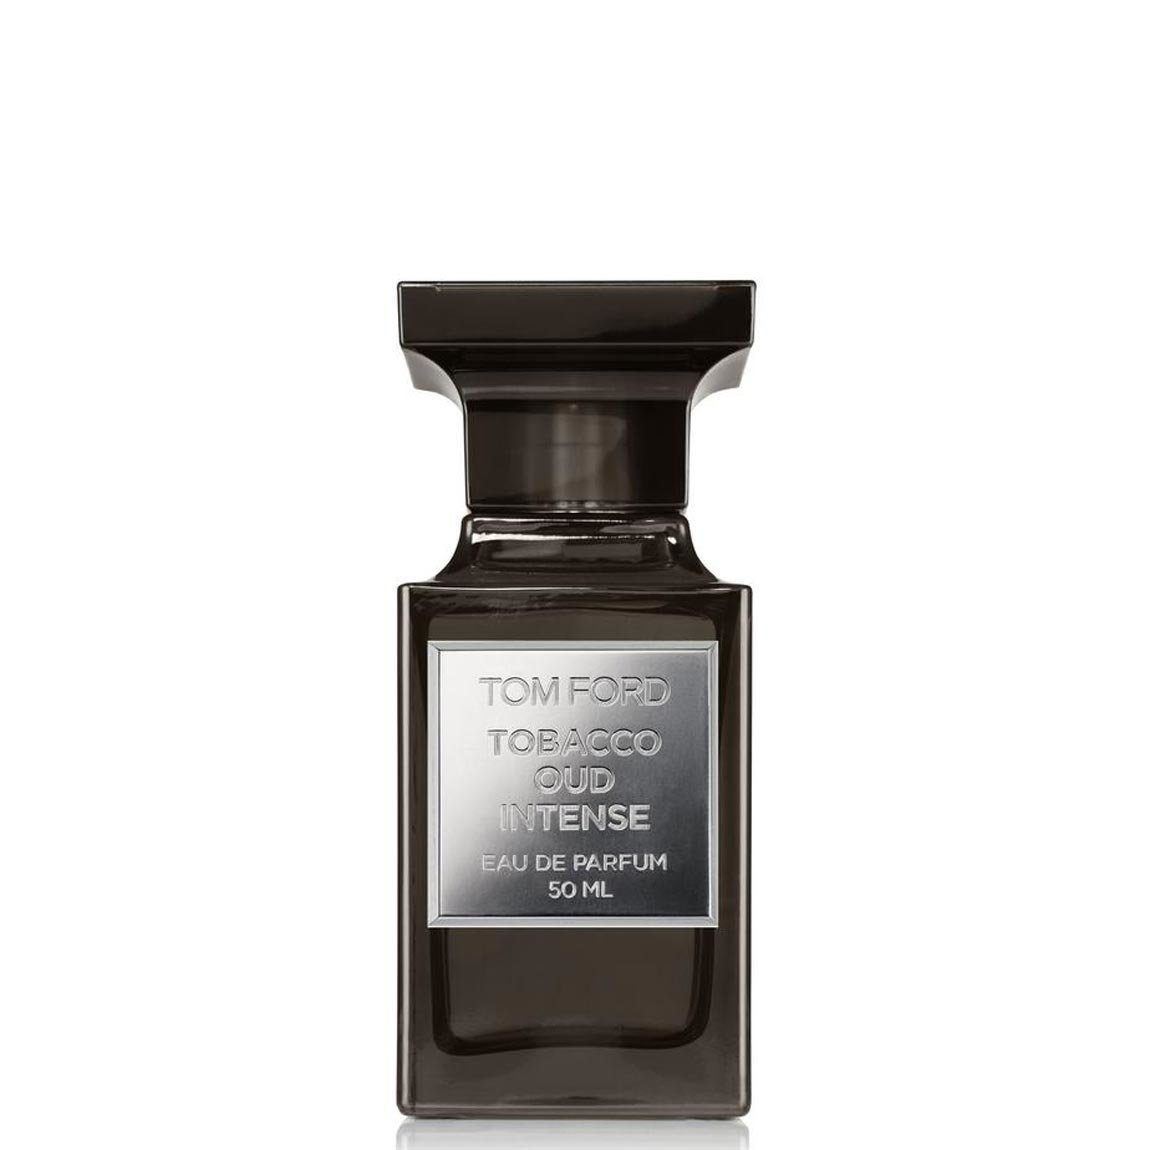 TOM FORD Tobacco Oud Intense EDP product smear.